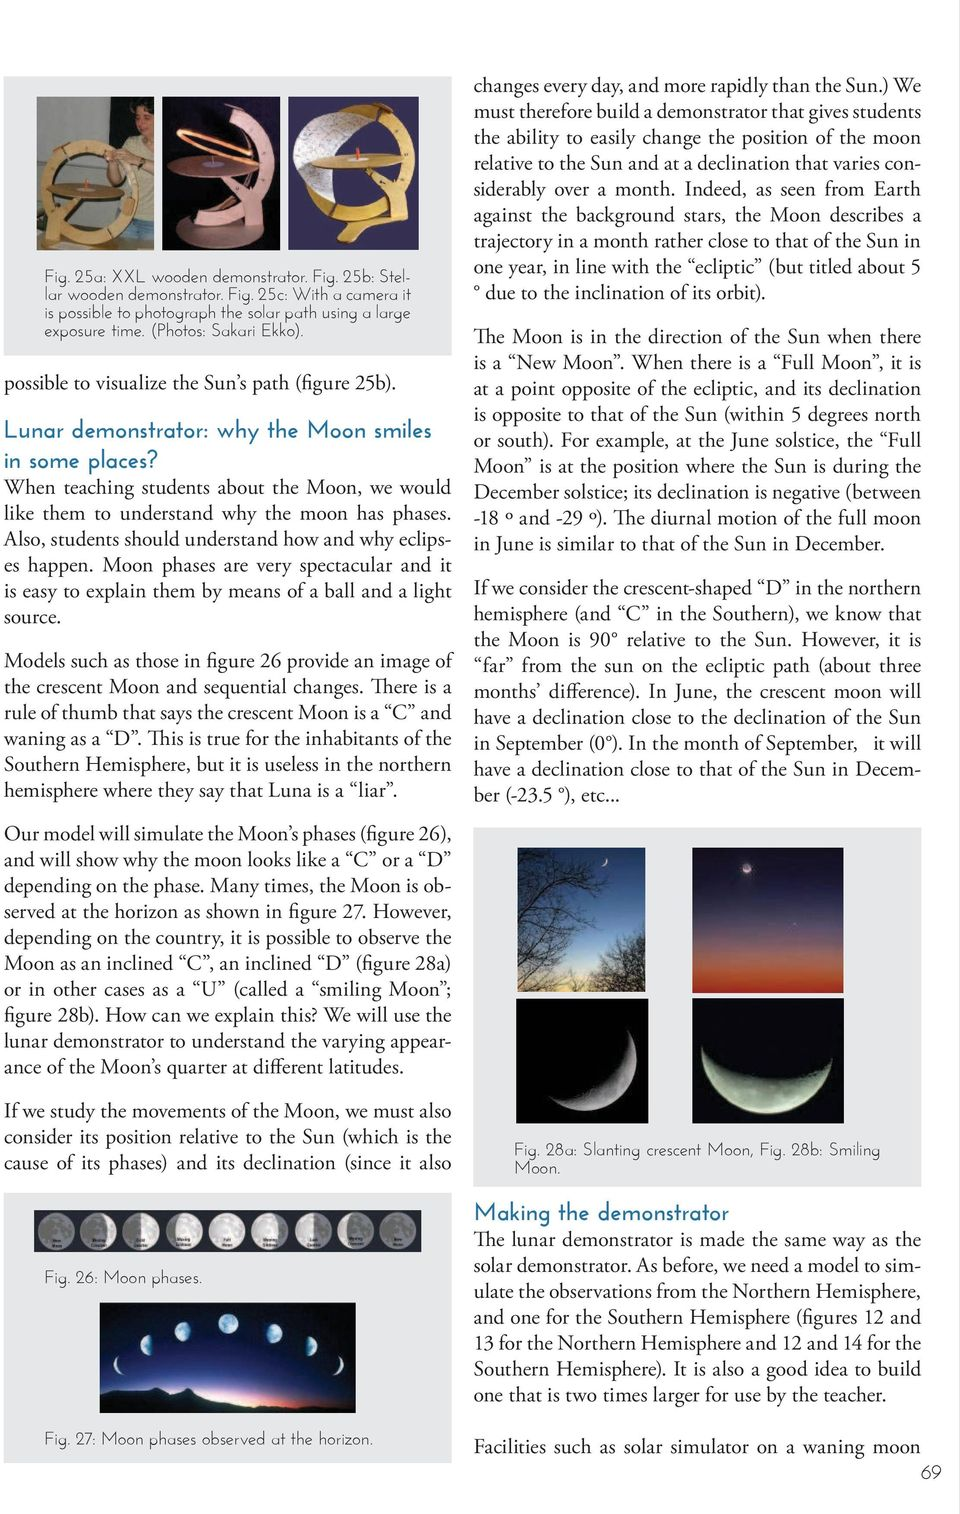 When teaching students about the Moon, we would like them to understand why the moon has phases. Also, students should understand how and why eclipses happen.